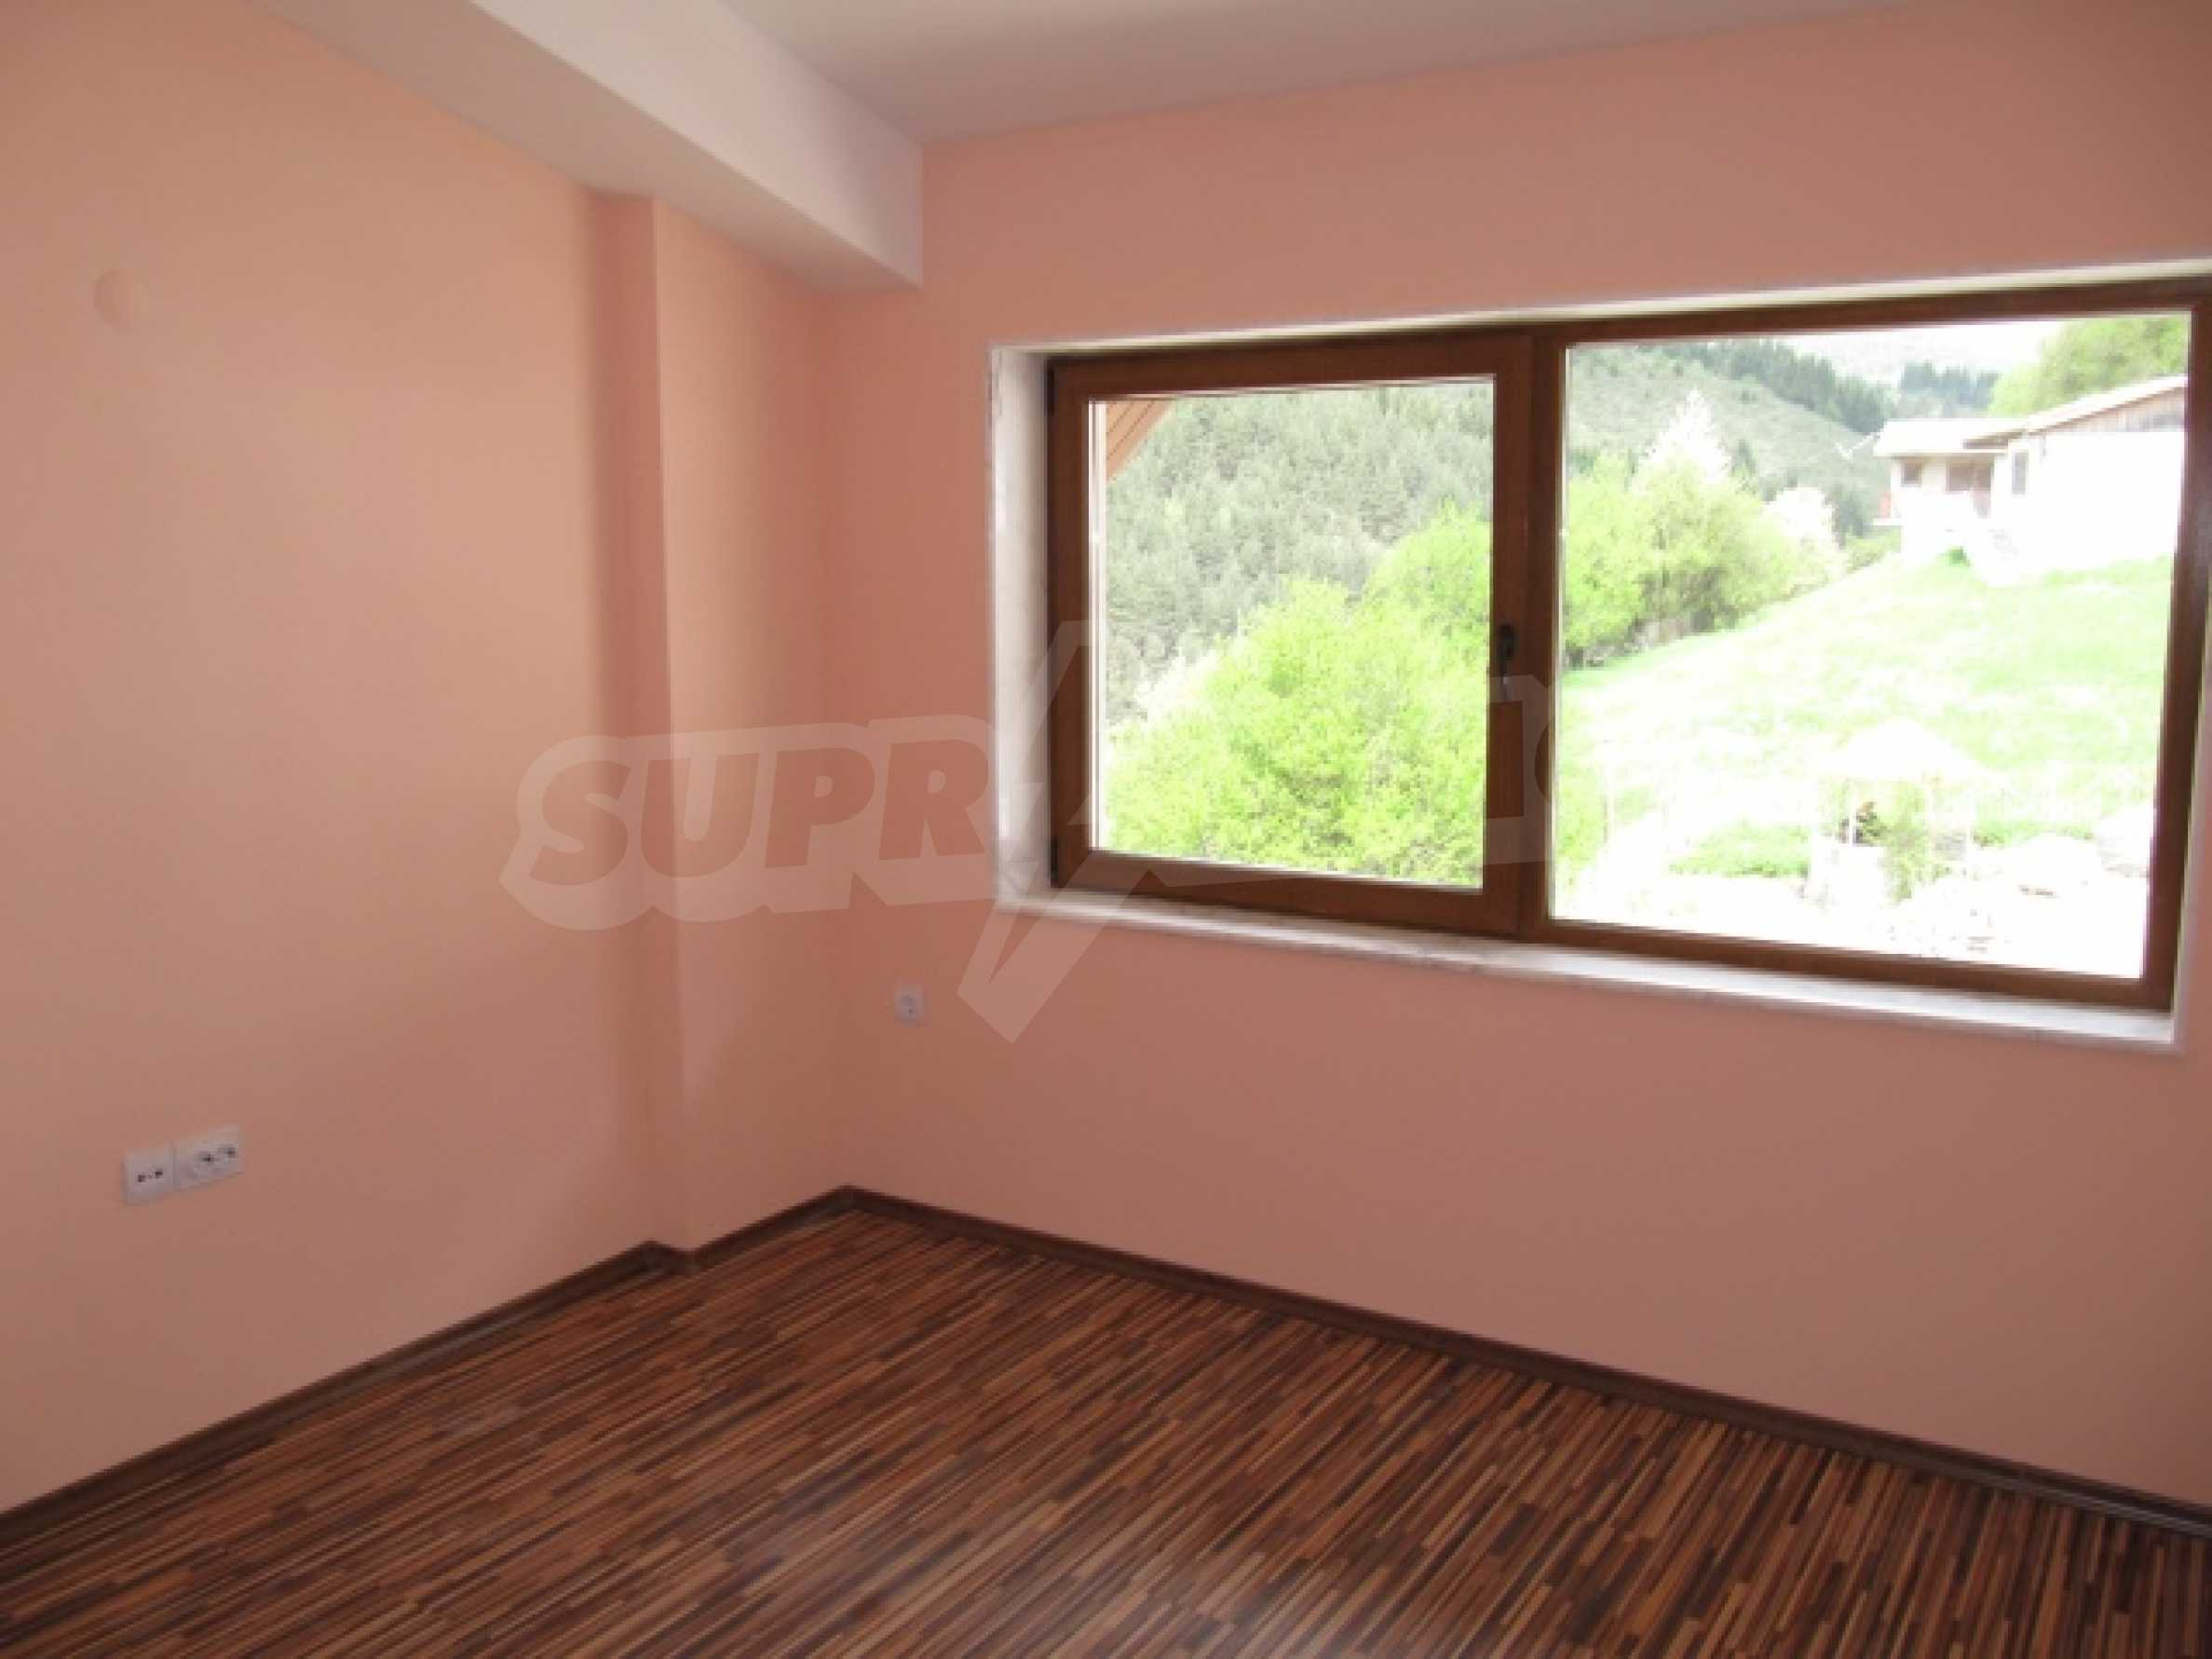 One bedroom apartment in a beautiful area 16